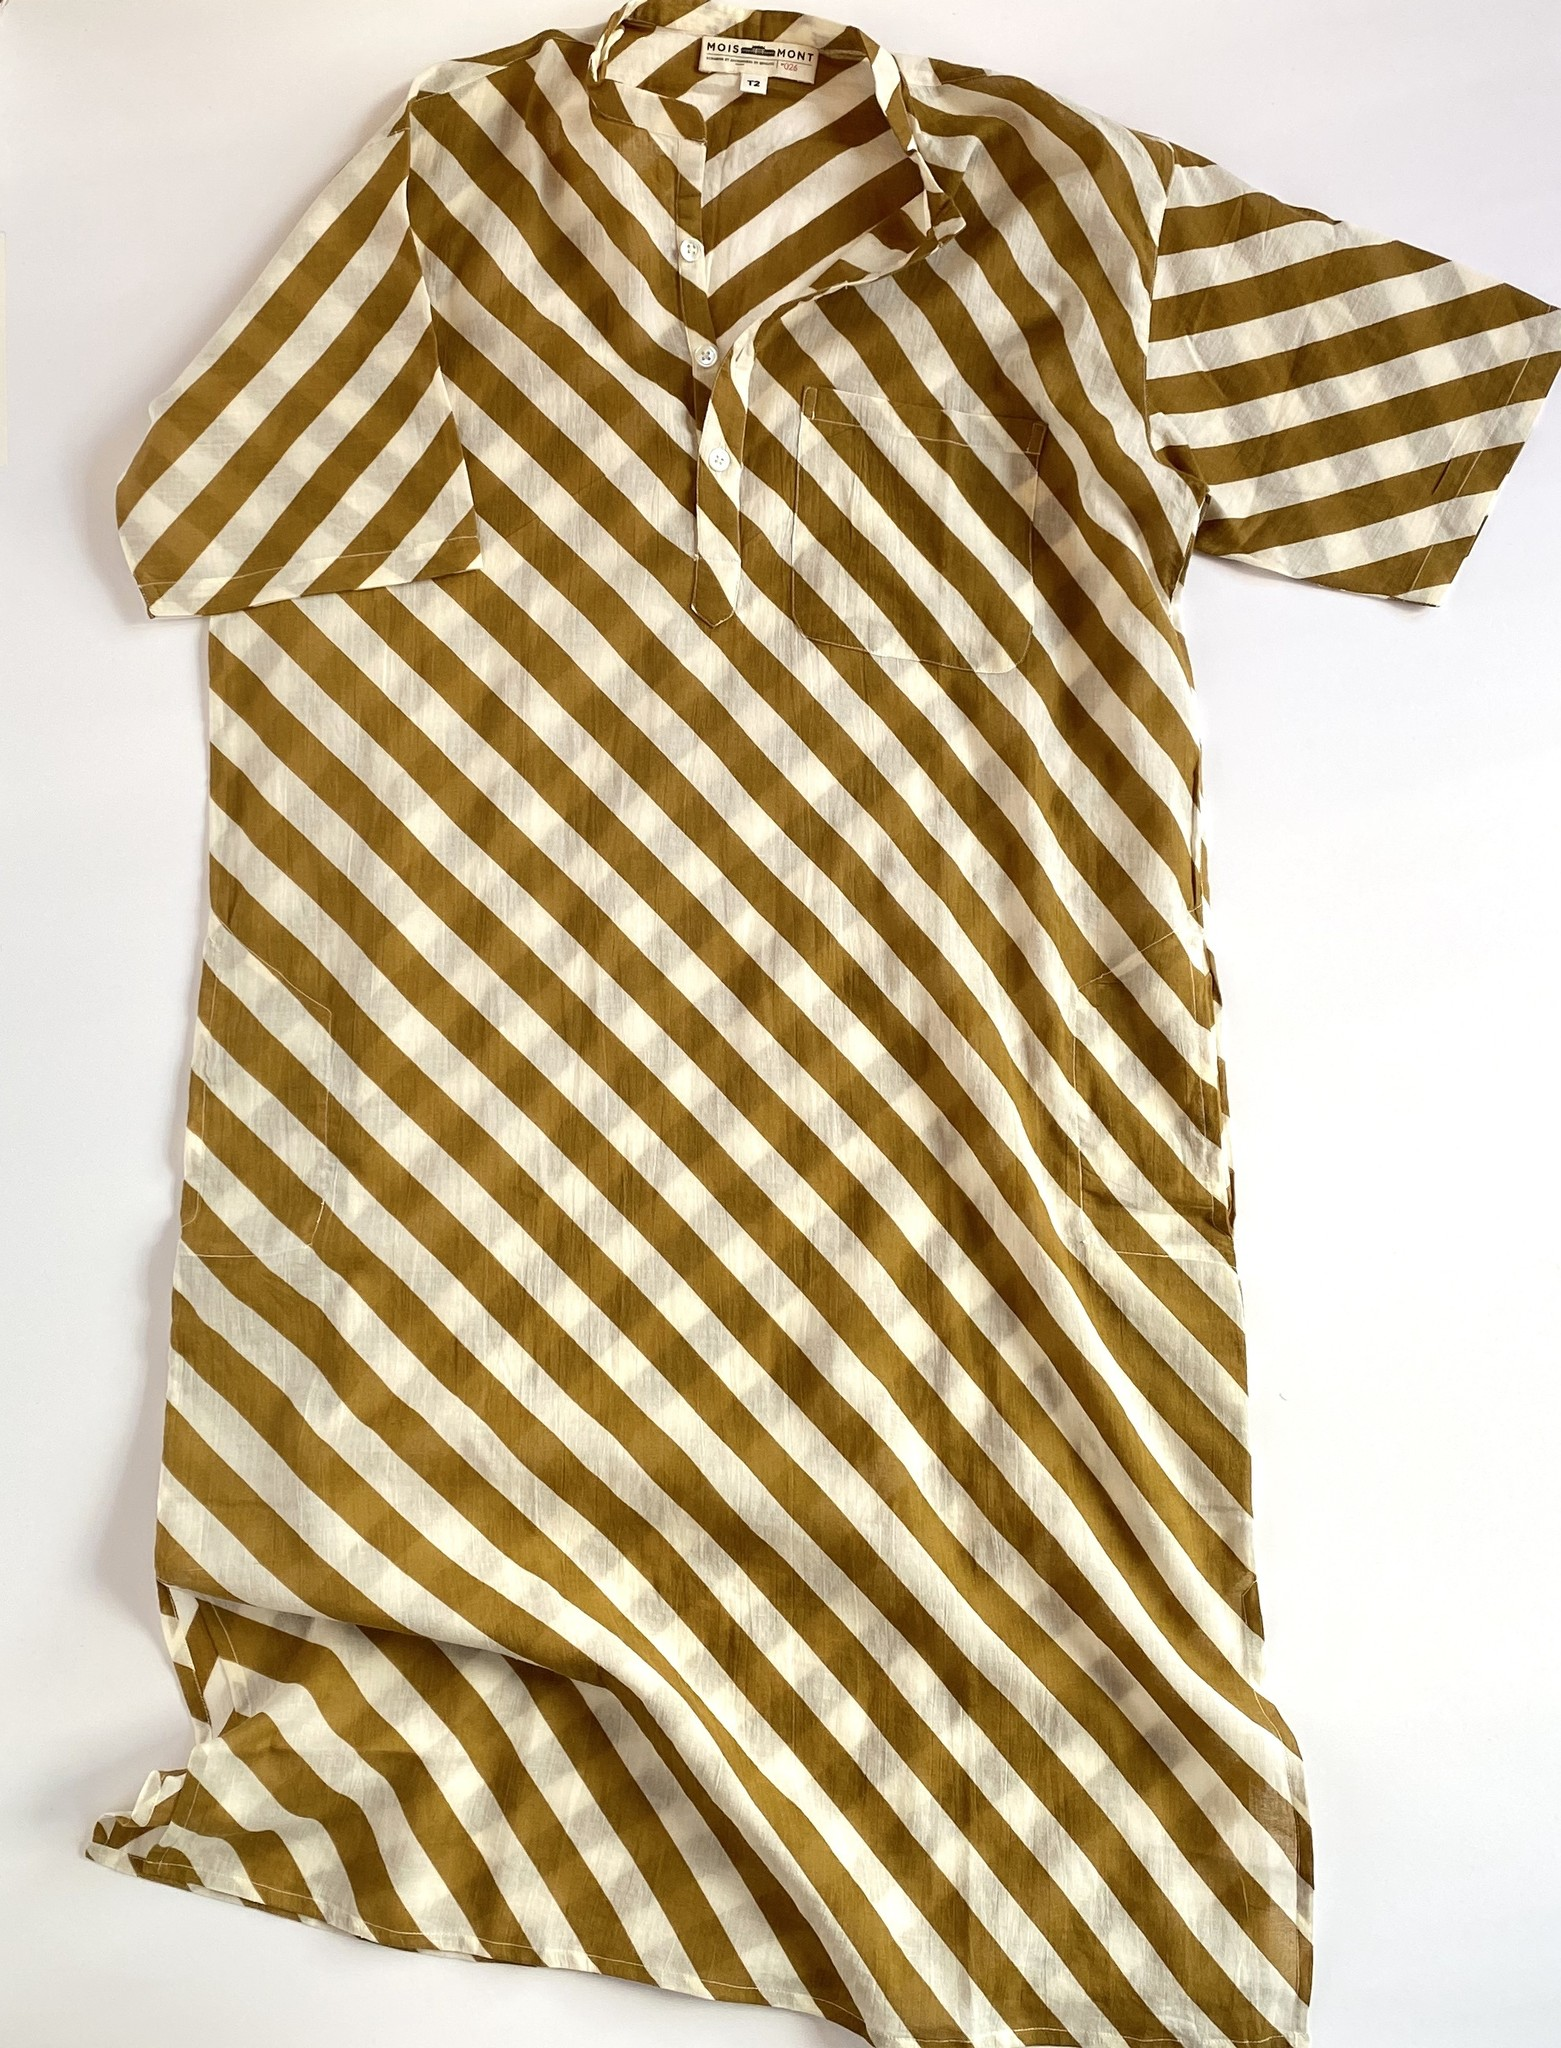 Mois Mont Mois Mont Tunic Dress in Wide Stripes